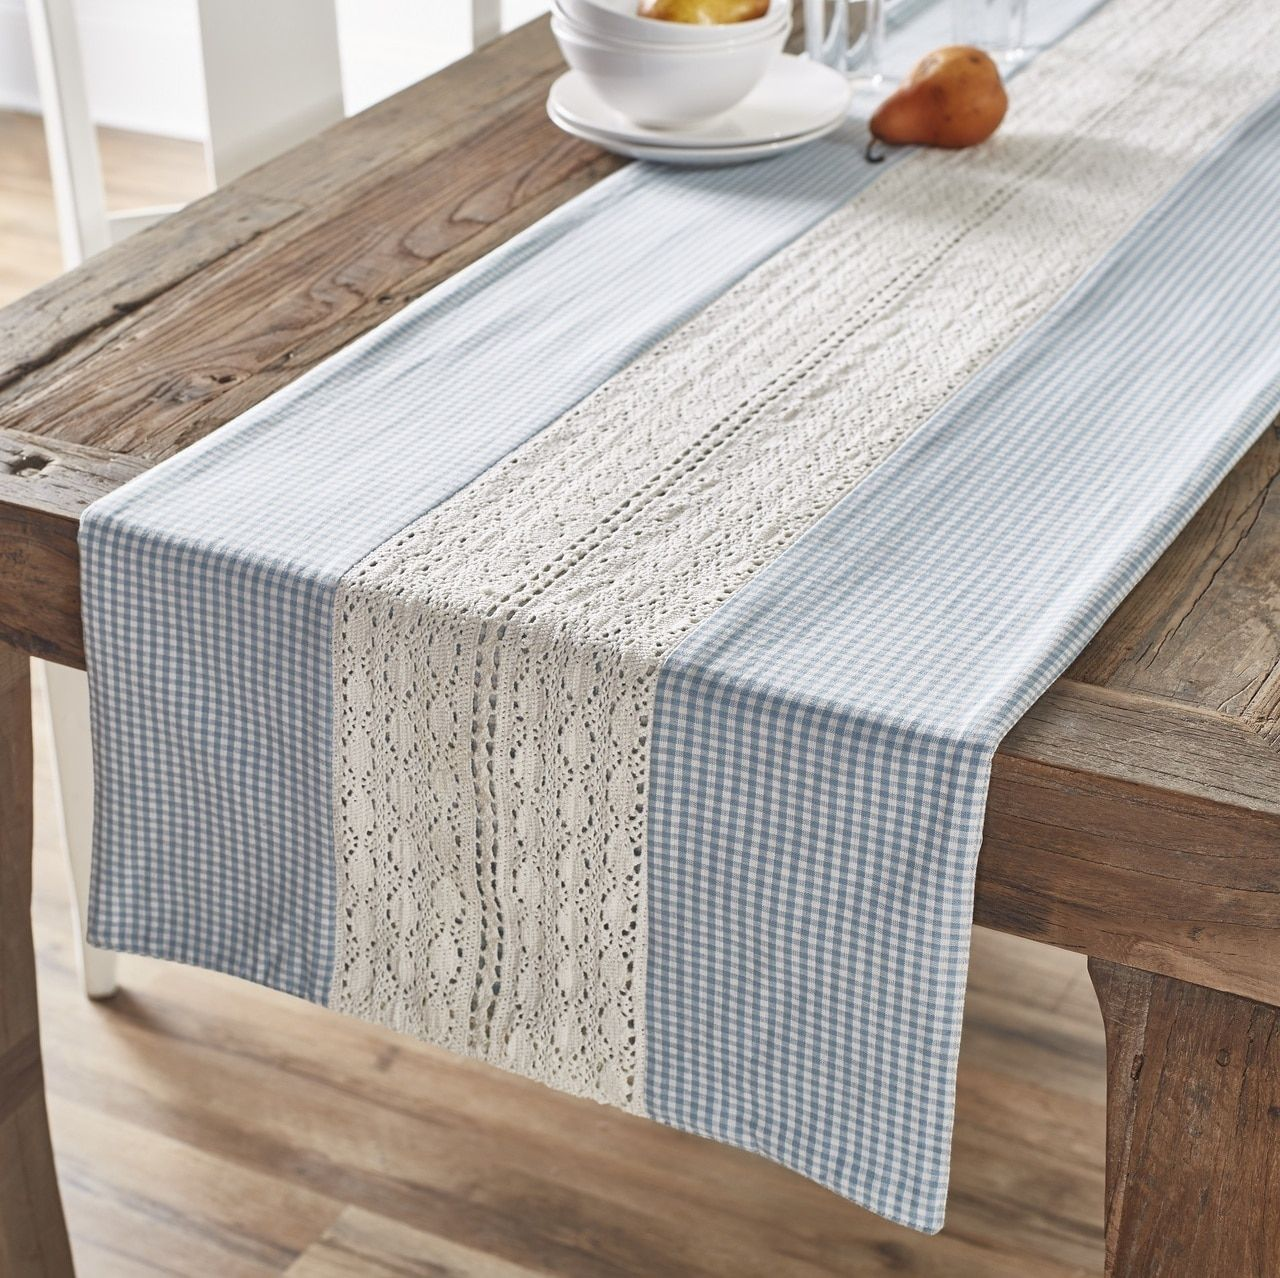 French Country Table Runner Blue White Lace Gingham Print Cotton 72 Matching Placemats And Napkins Also Available Blue Table Runner Cottage Table Blue Table